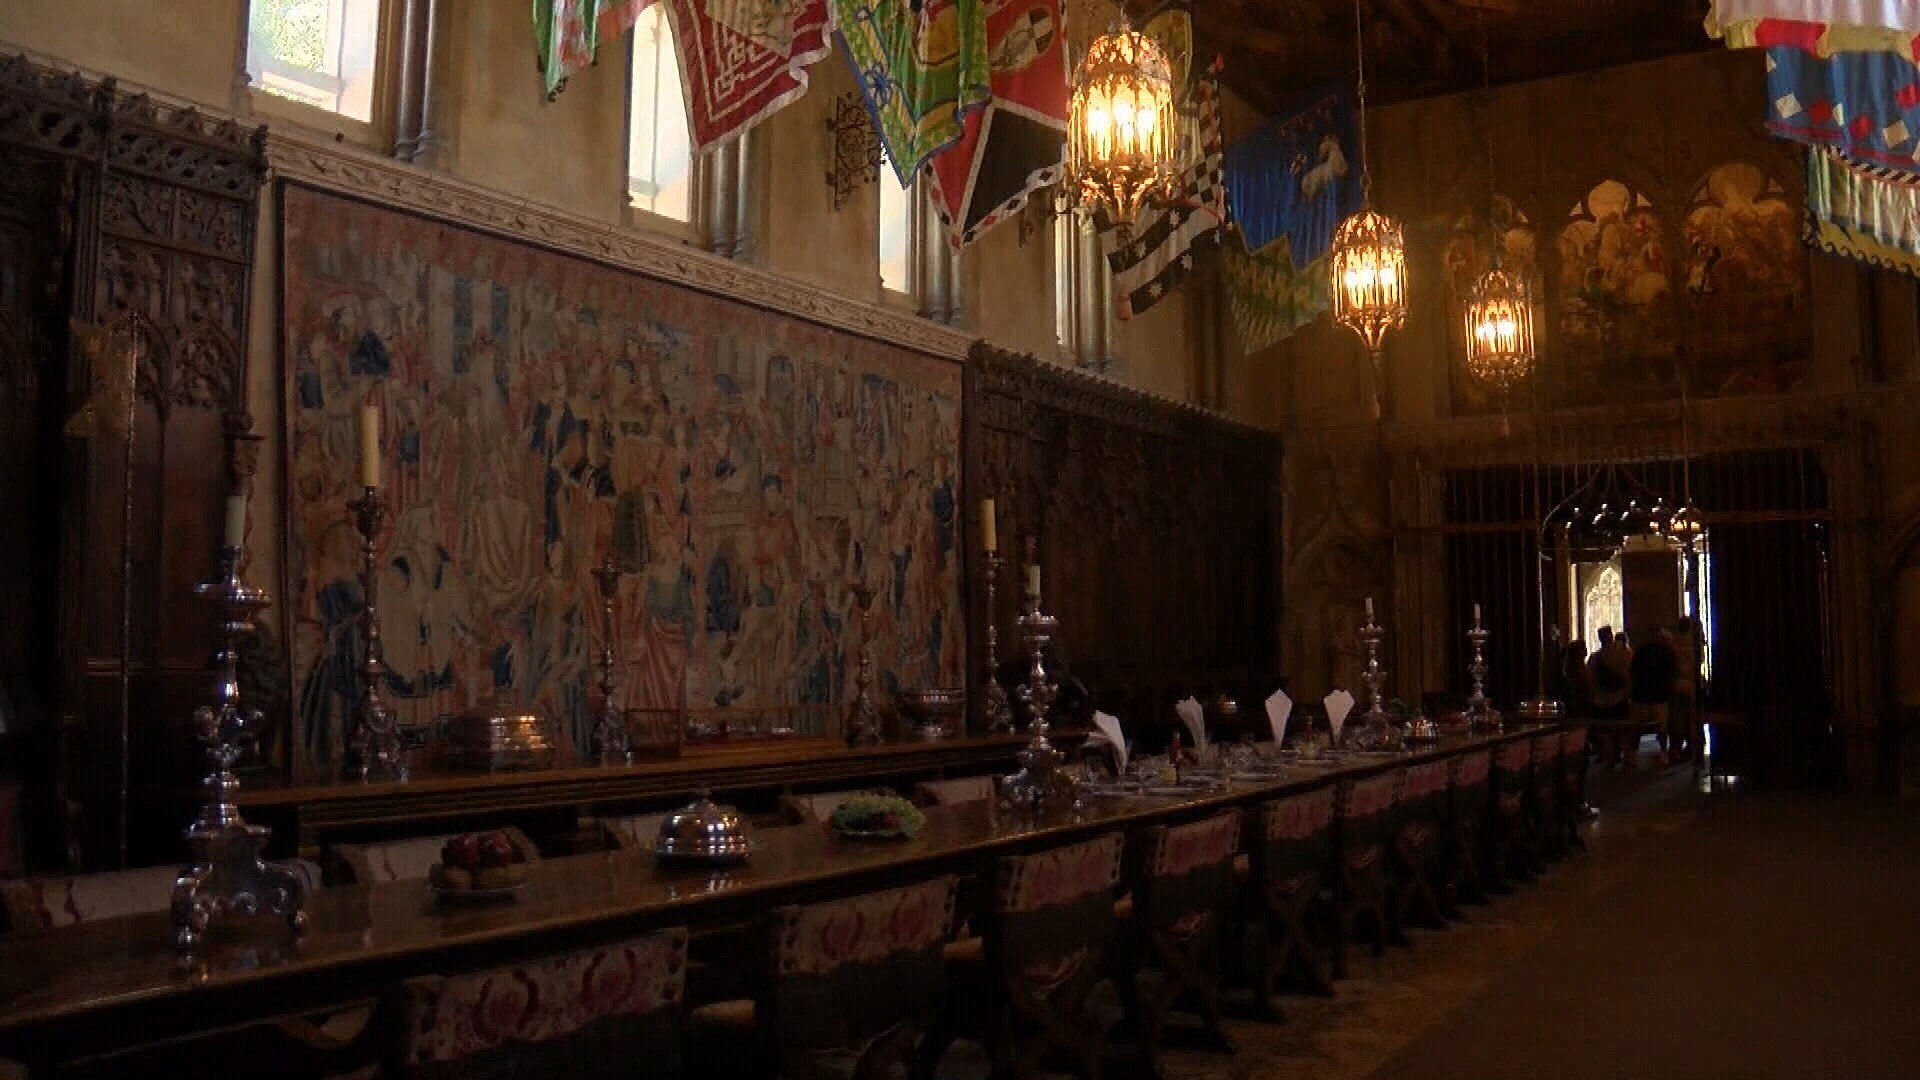 Hearst Castle's Refectory (dining room). (KSBY photo)